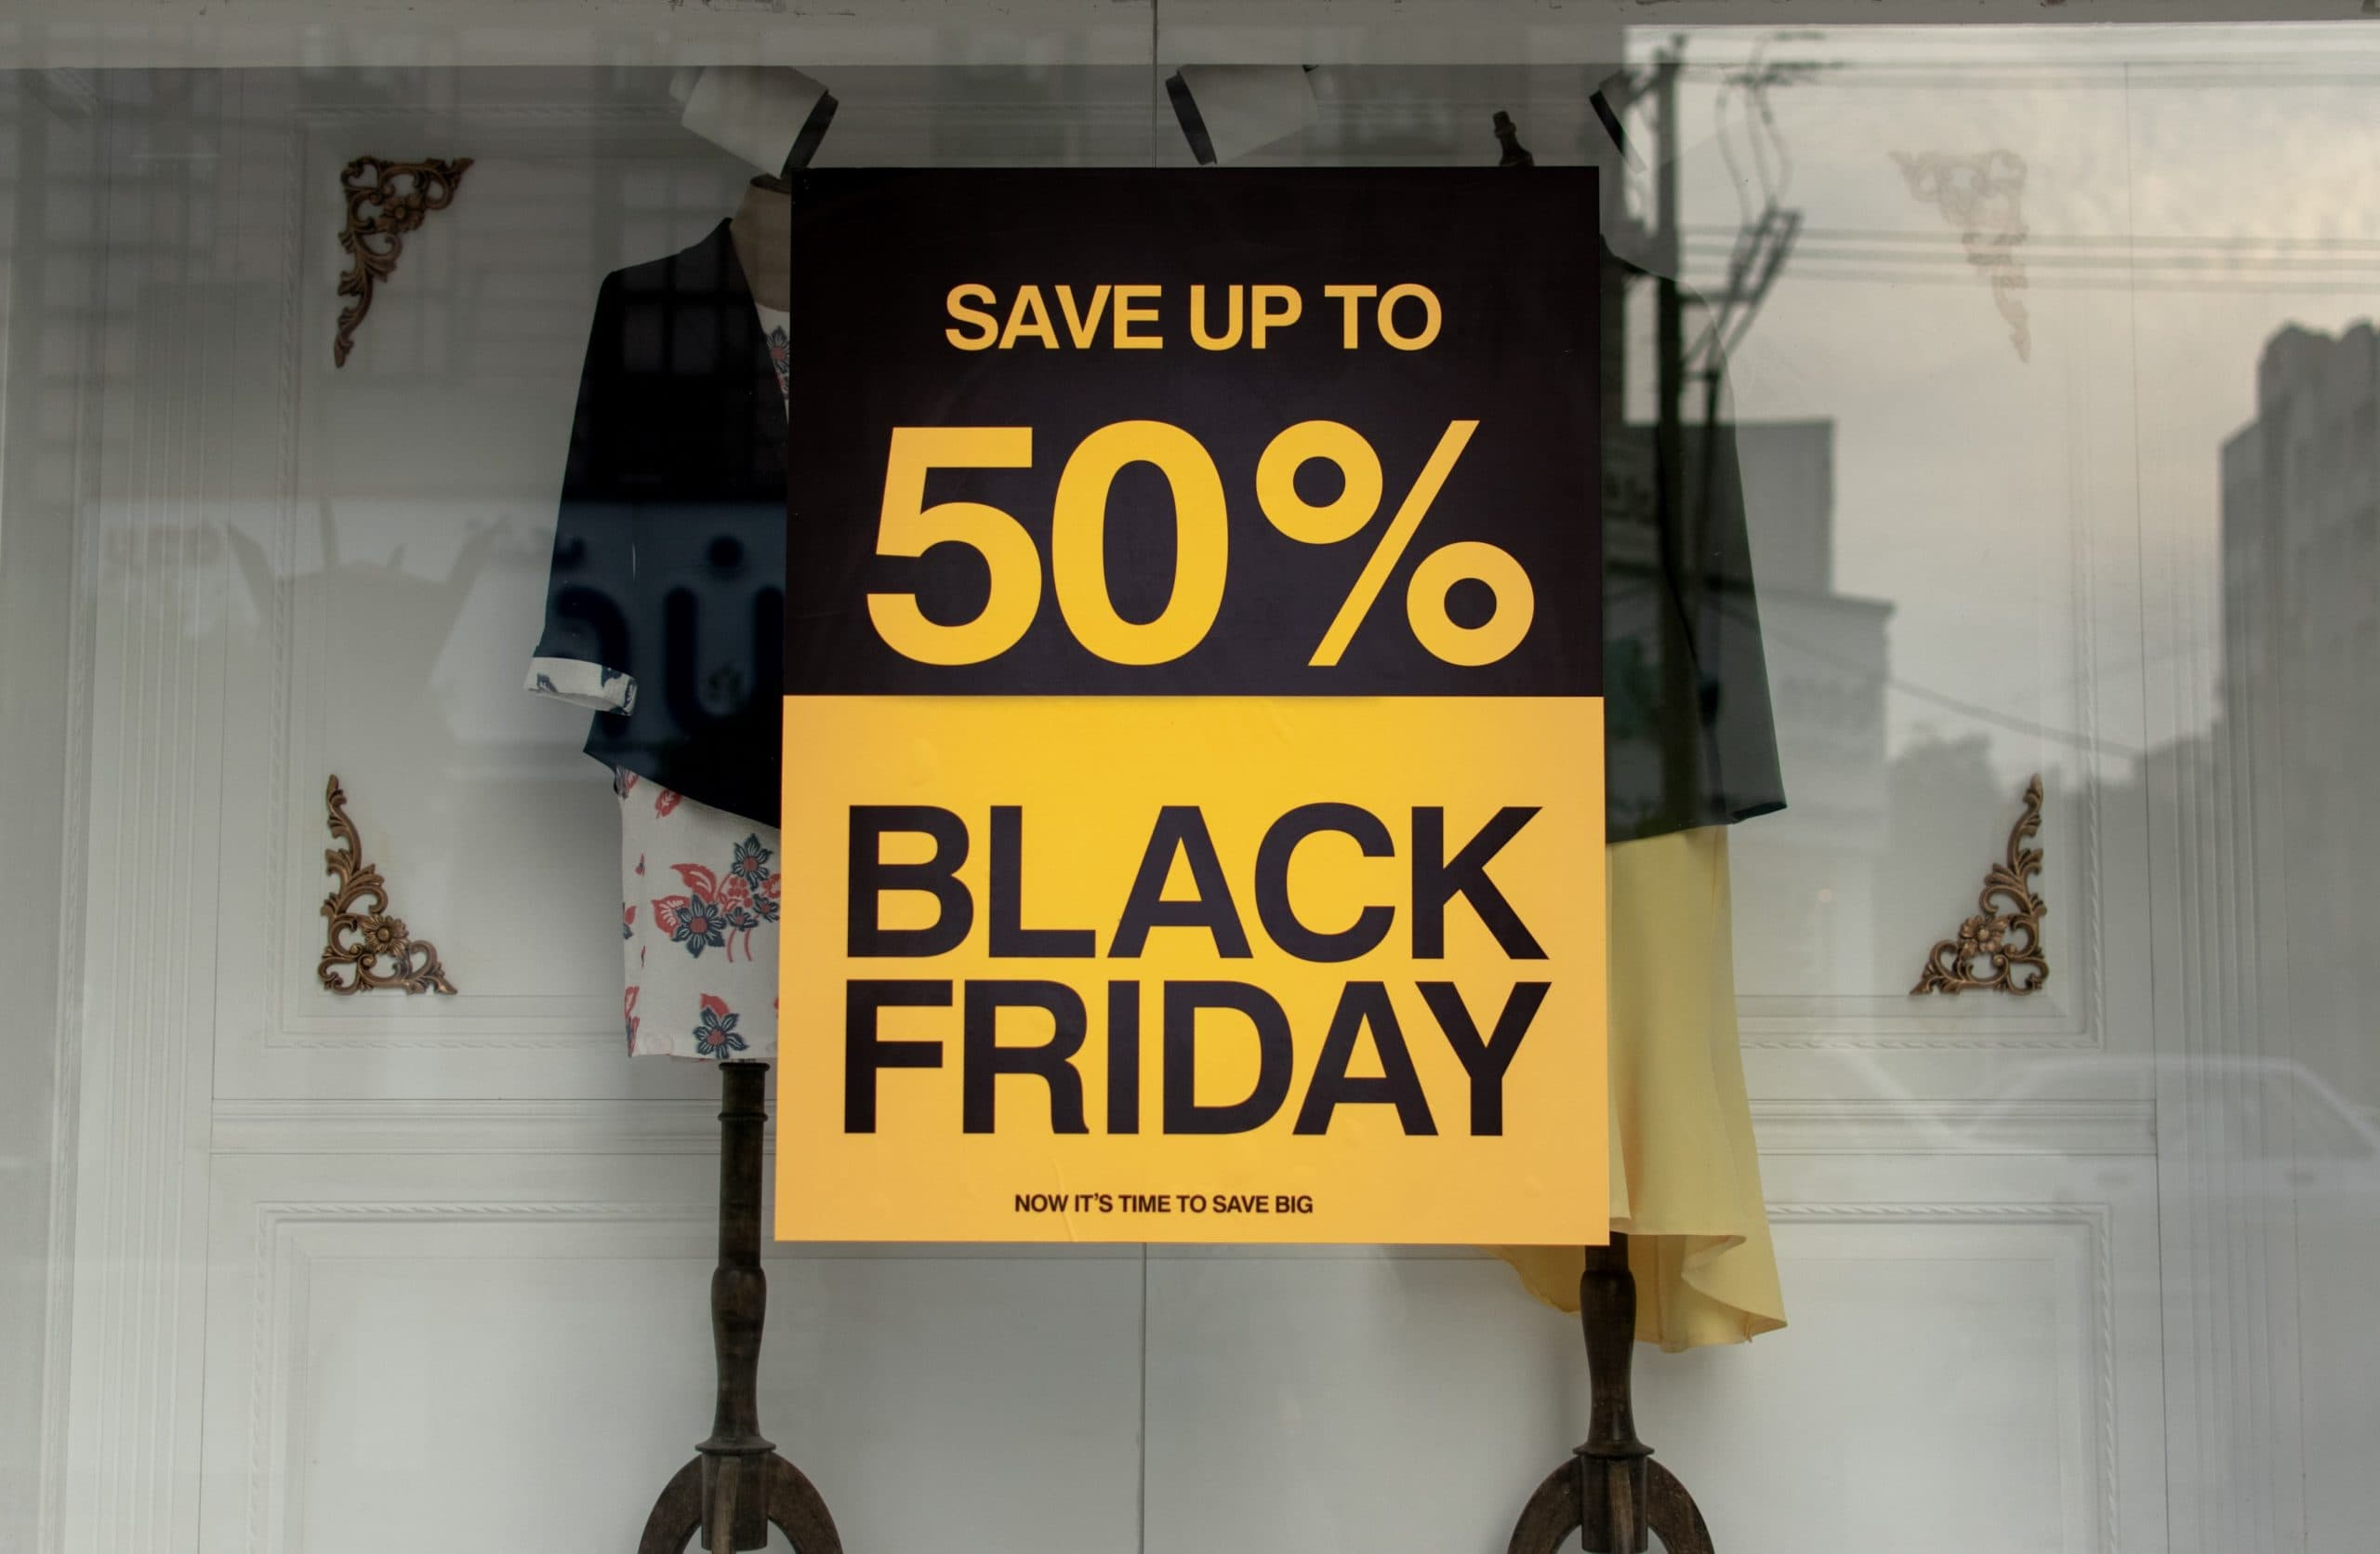 Save up to 50%. Black Friday.